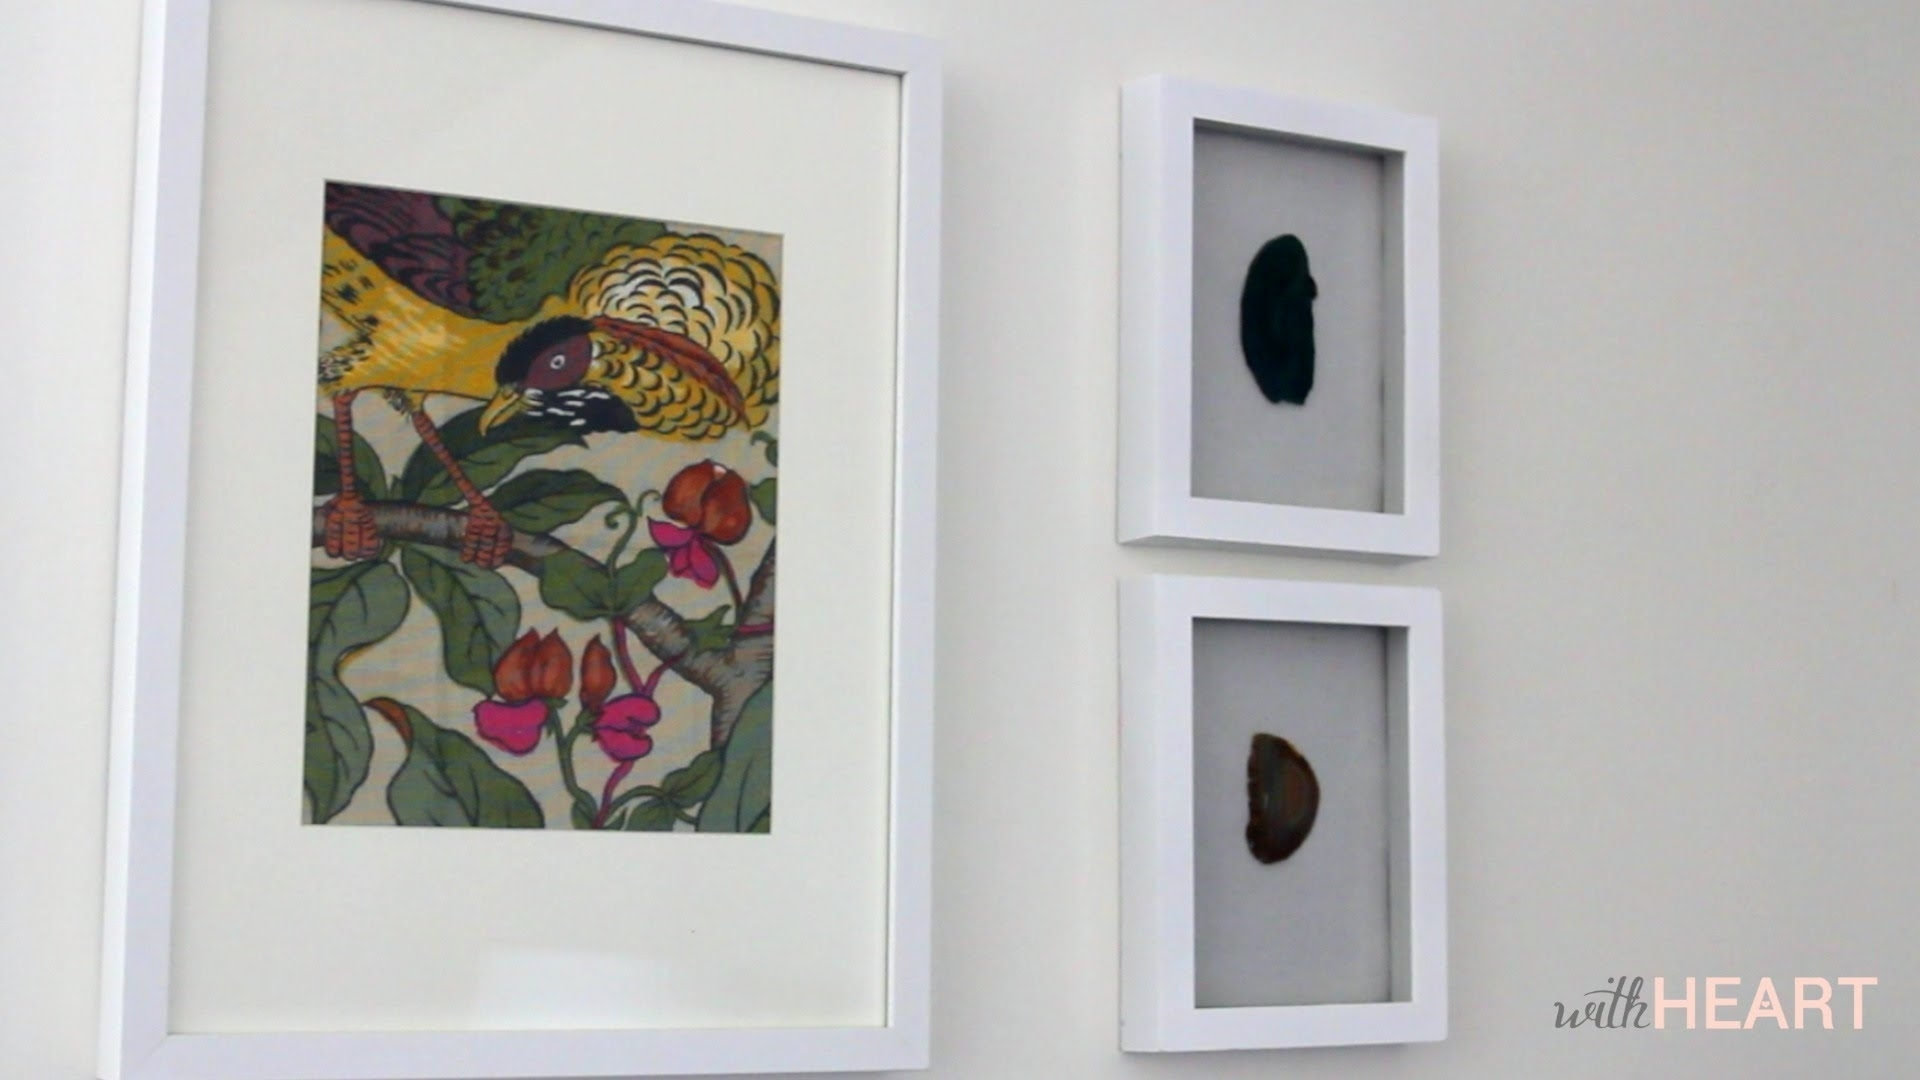 Easy Art: Framed Fabric | Withheart – Youtube In Most Recent Fabric Wall Art Frames (Gallery 13 of 15)